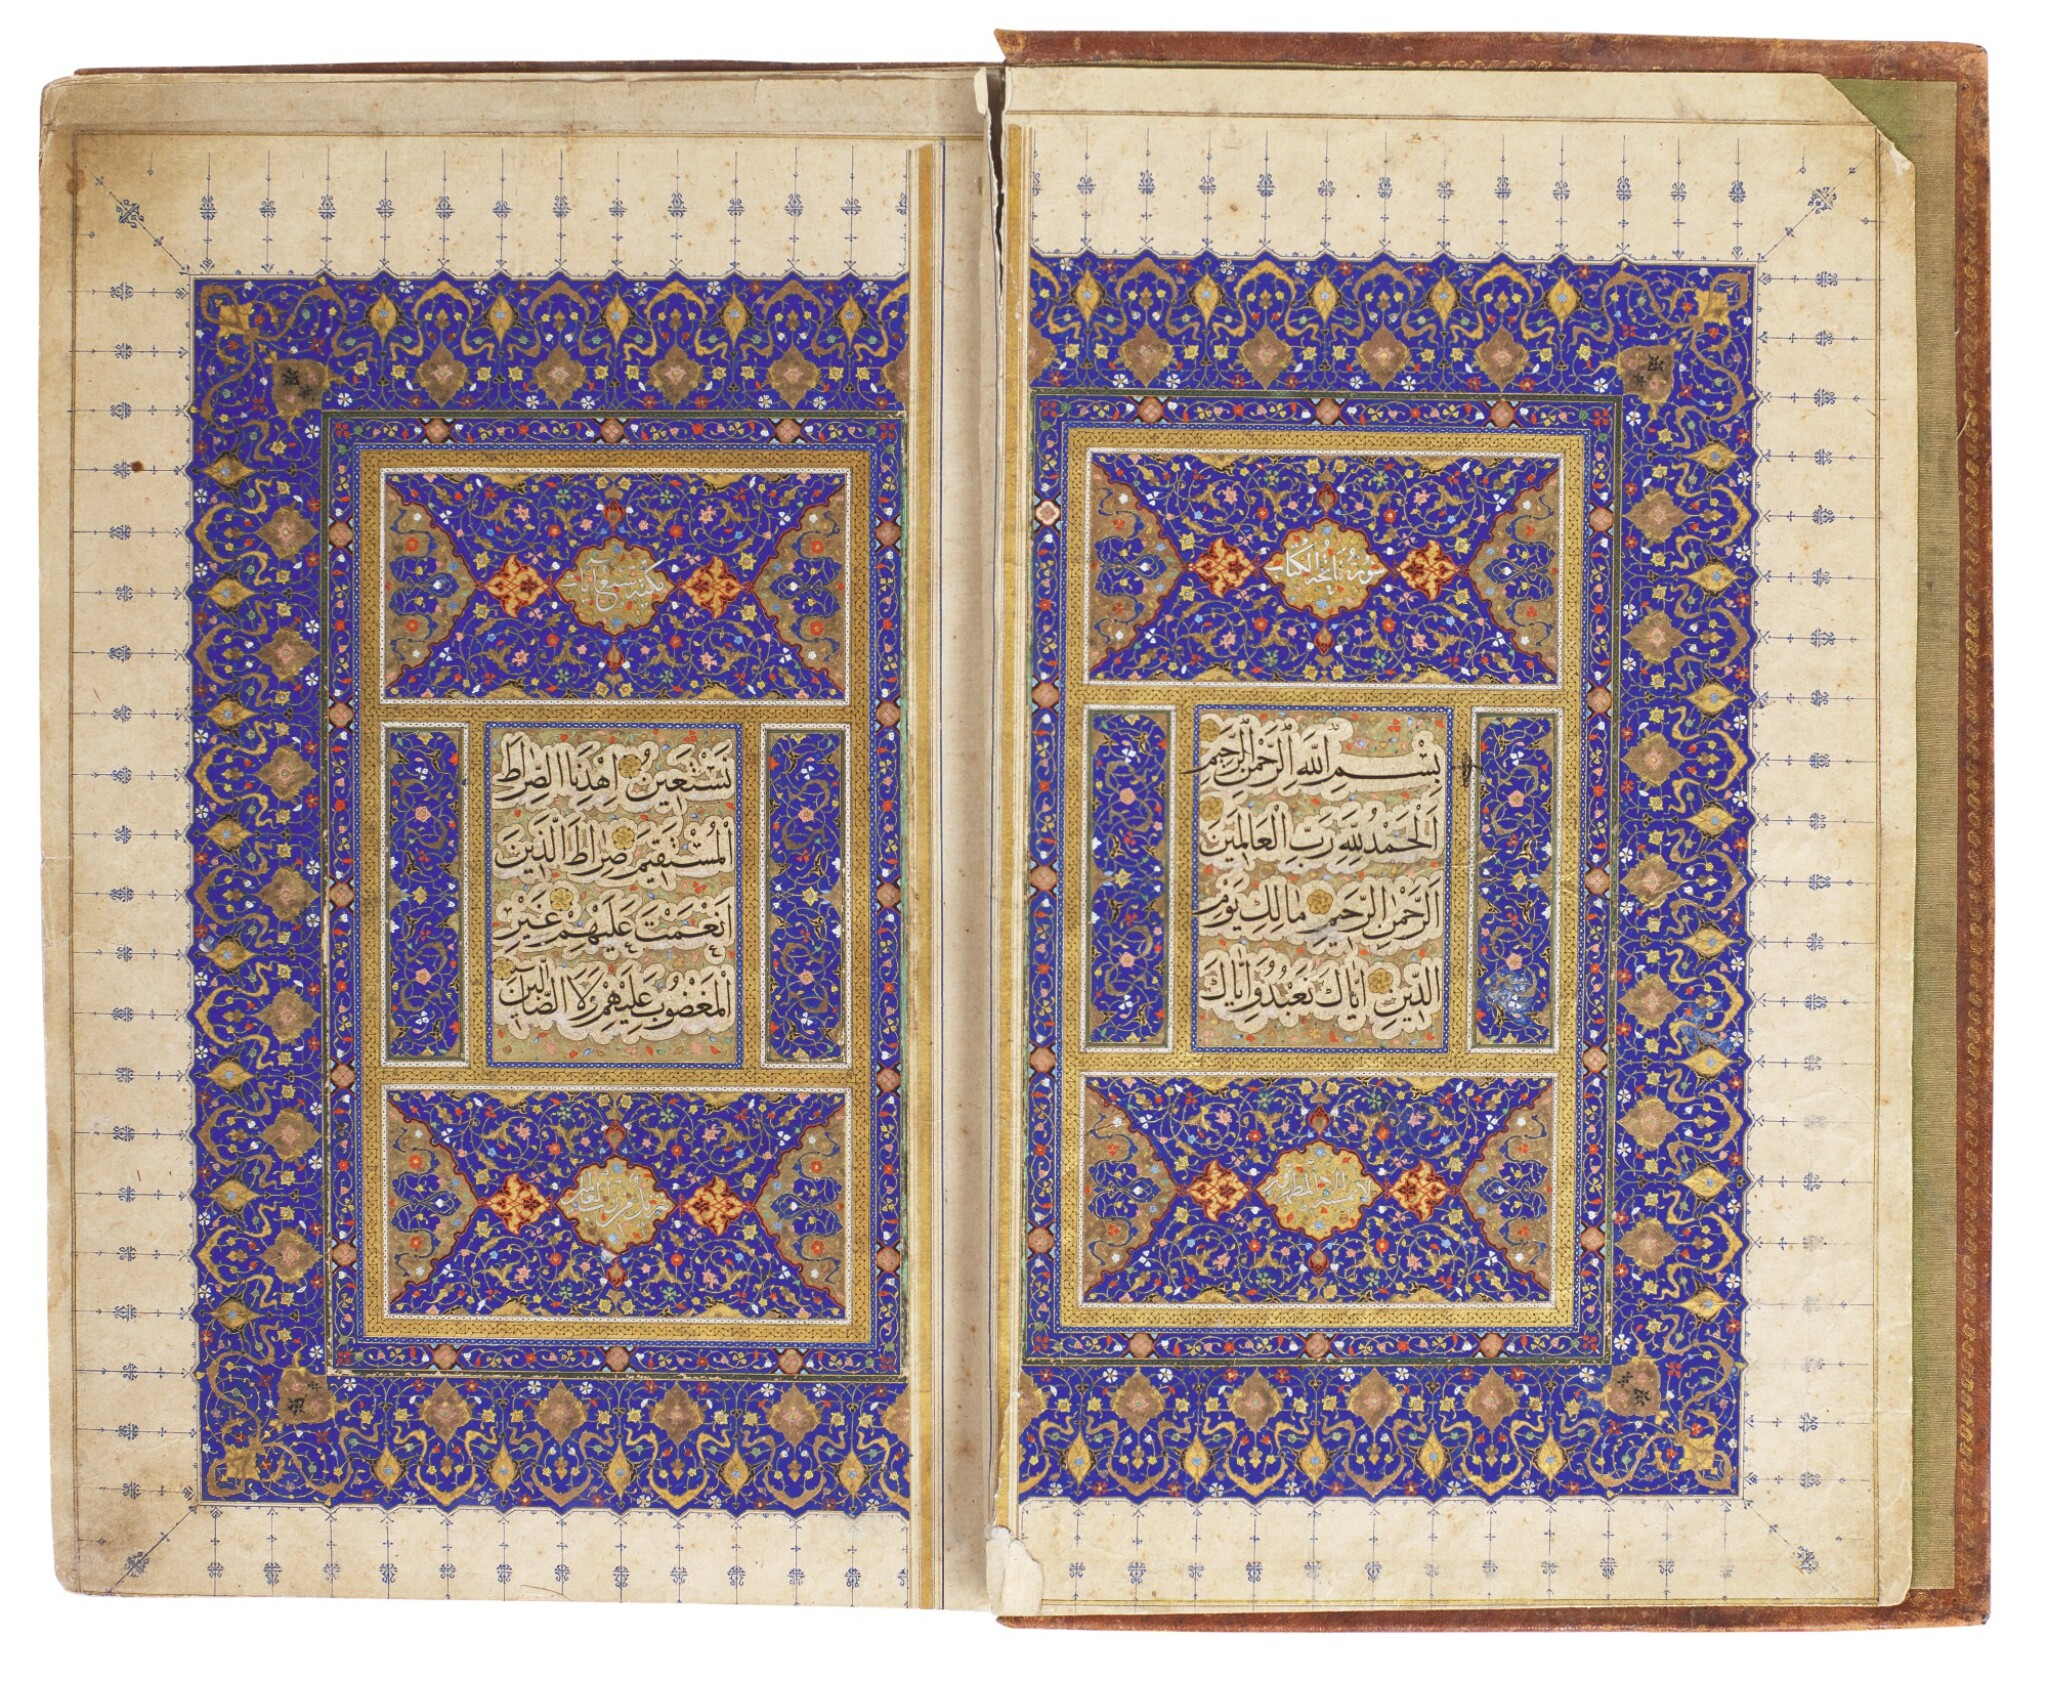 View full screen - View 1 of Lot 27. AN EXCEPTIONAL ILLUMINATED QUR'AN, PERSIA, SAFAVID, FIRST HALF 16TH CENTURY.